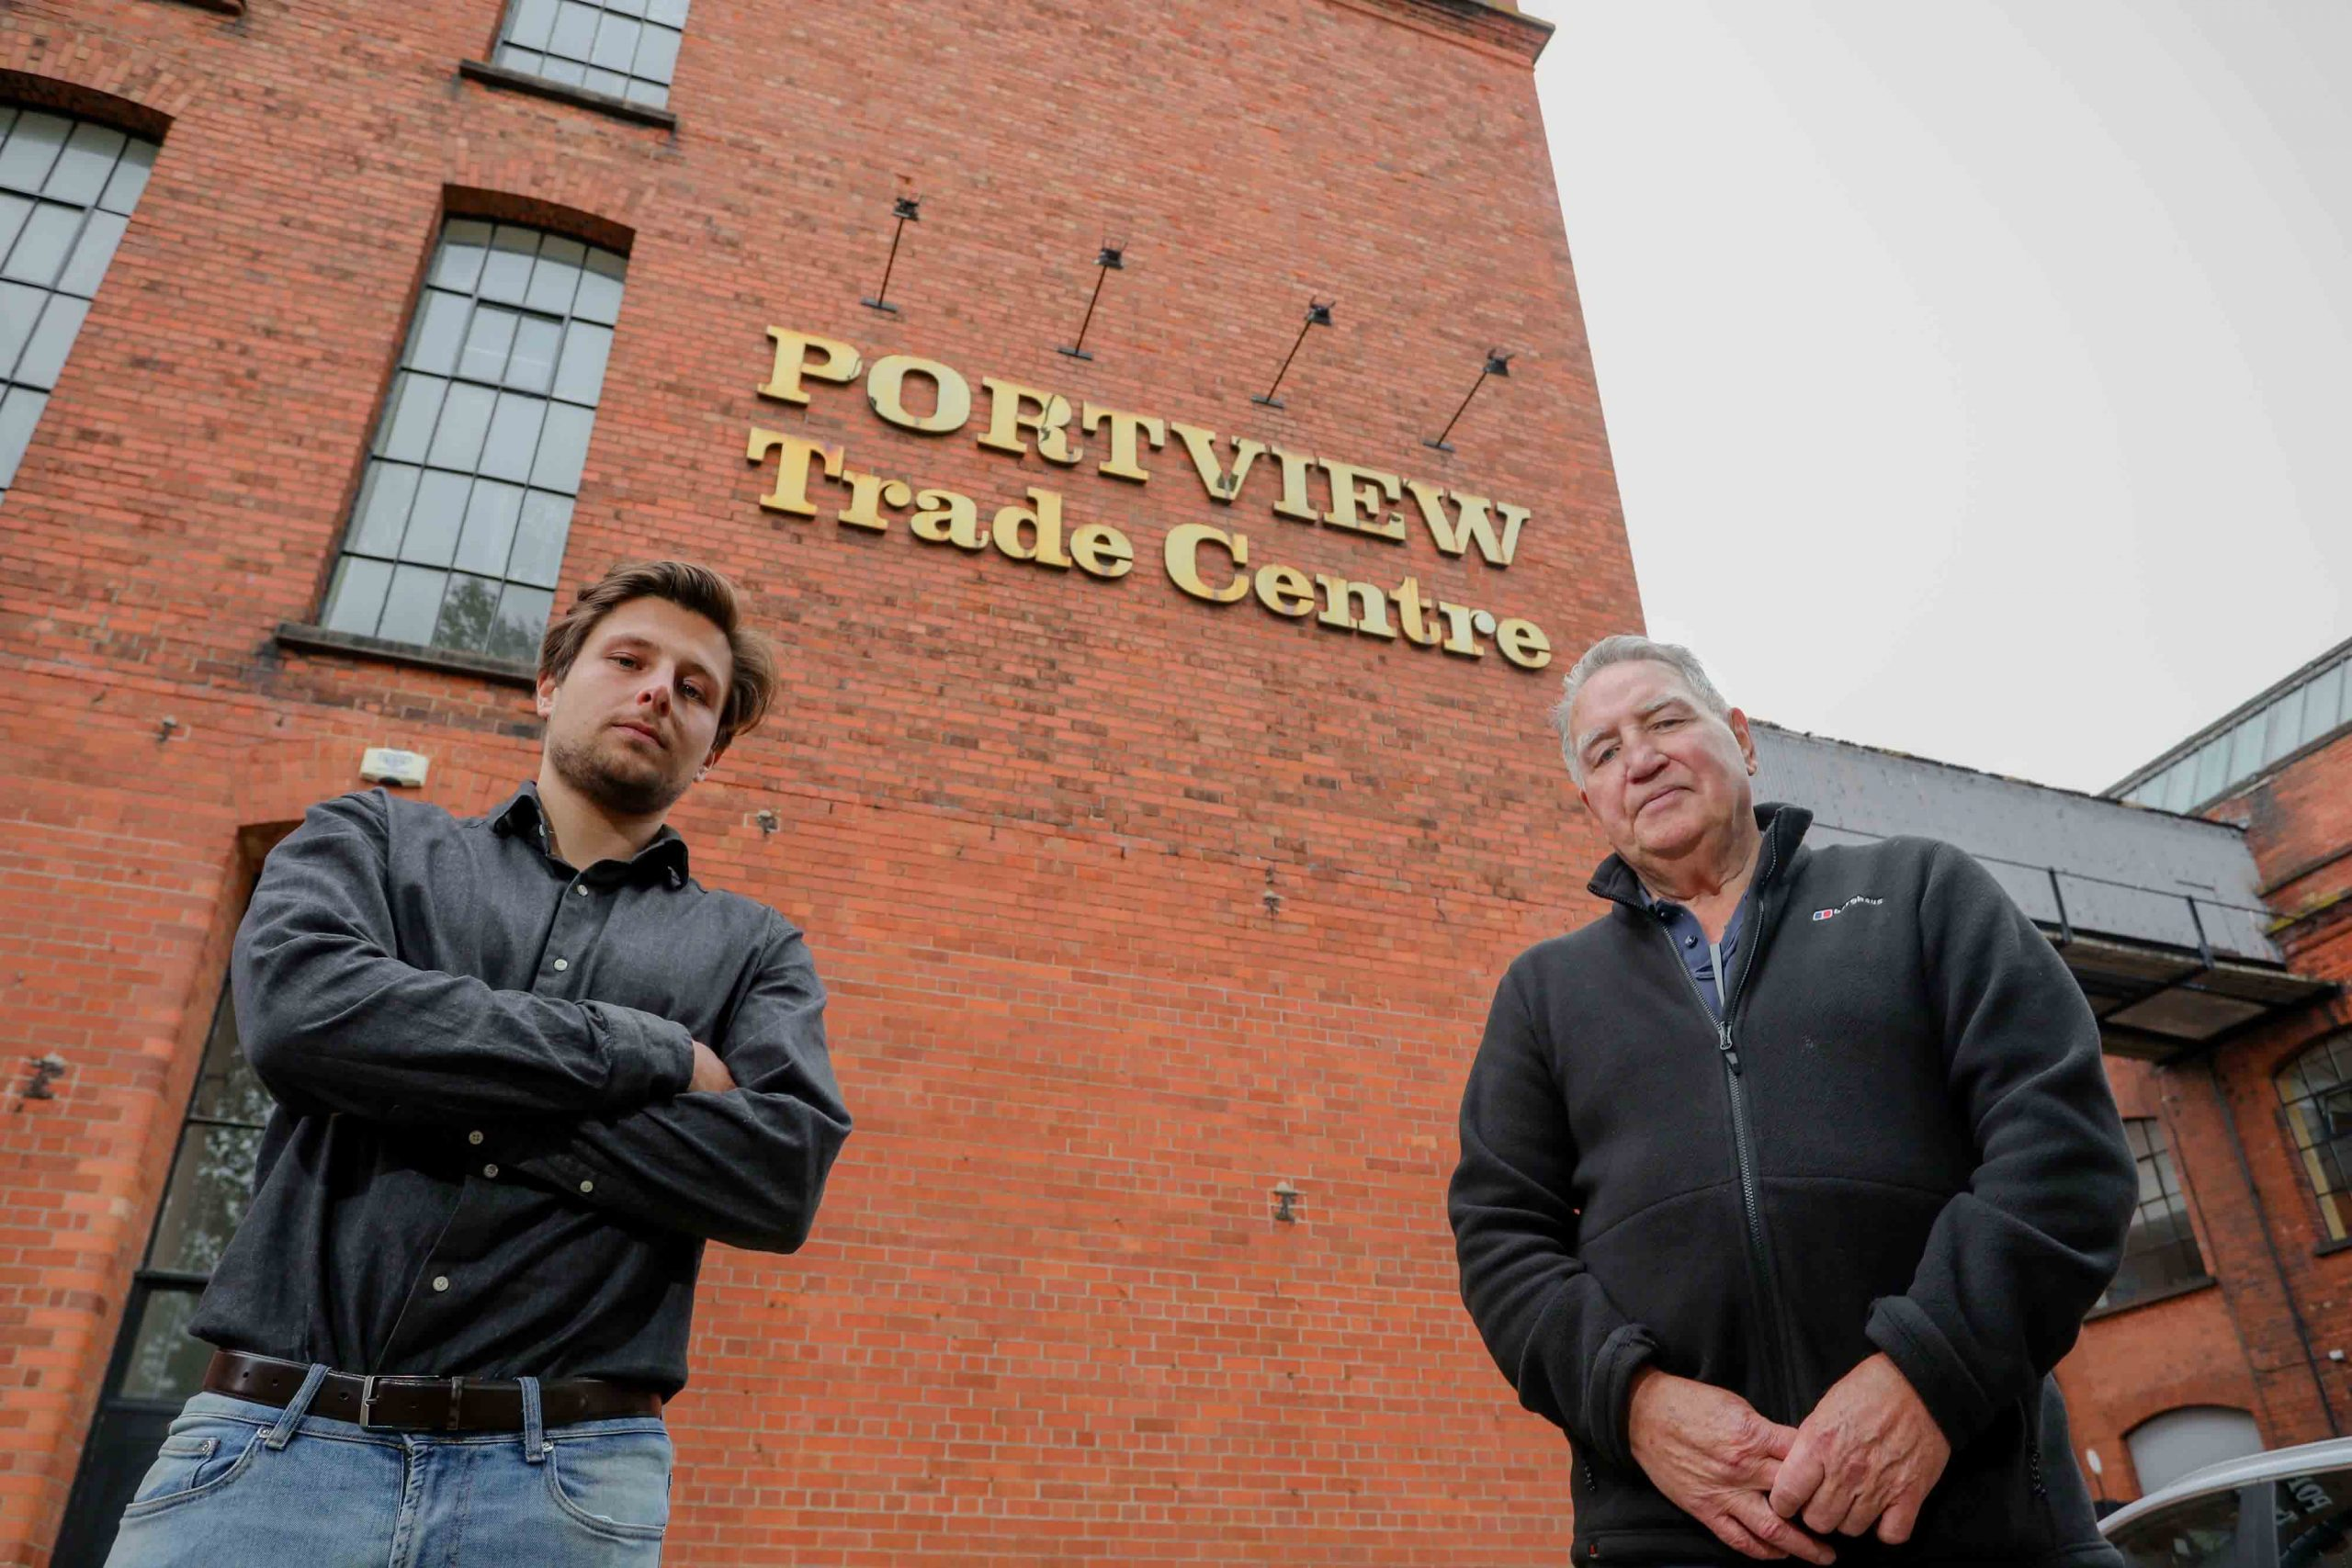 Portview Trade Centre on the Newtownards Road has been awarded a grant of £221,200 from The National Lottery Heritage Fund towards the development of a sustainable masterplan to preserve and maintain the heritage of what was formerly the site of the Strand Spinning Mill, once the largest flax tow spinning mill in the world and a key feature within a vibrant East Belfast community sustained by thriving industries such as ropeworks and ship building. Pictured at the iconic site are Portview Trade Centre Chairman Brendan Mackin (right) and Ralf Alwani from Urban Scale Interventions (USI), the Belfast-based company that is overseeing the concept development of the project and ensuring that it is sustainable and self-sufficient. This long-term vision will be achieved by transforming Portview into a creative social hub in the area, with Heritage at its core but also running across running across a number of key themes including Tourism, Education and Training, Resilience and Employment.